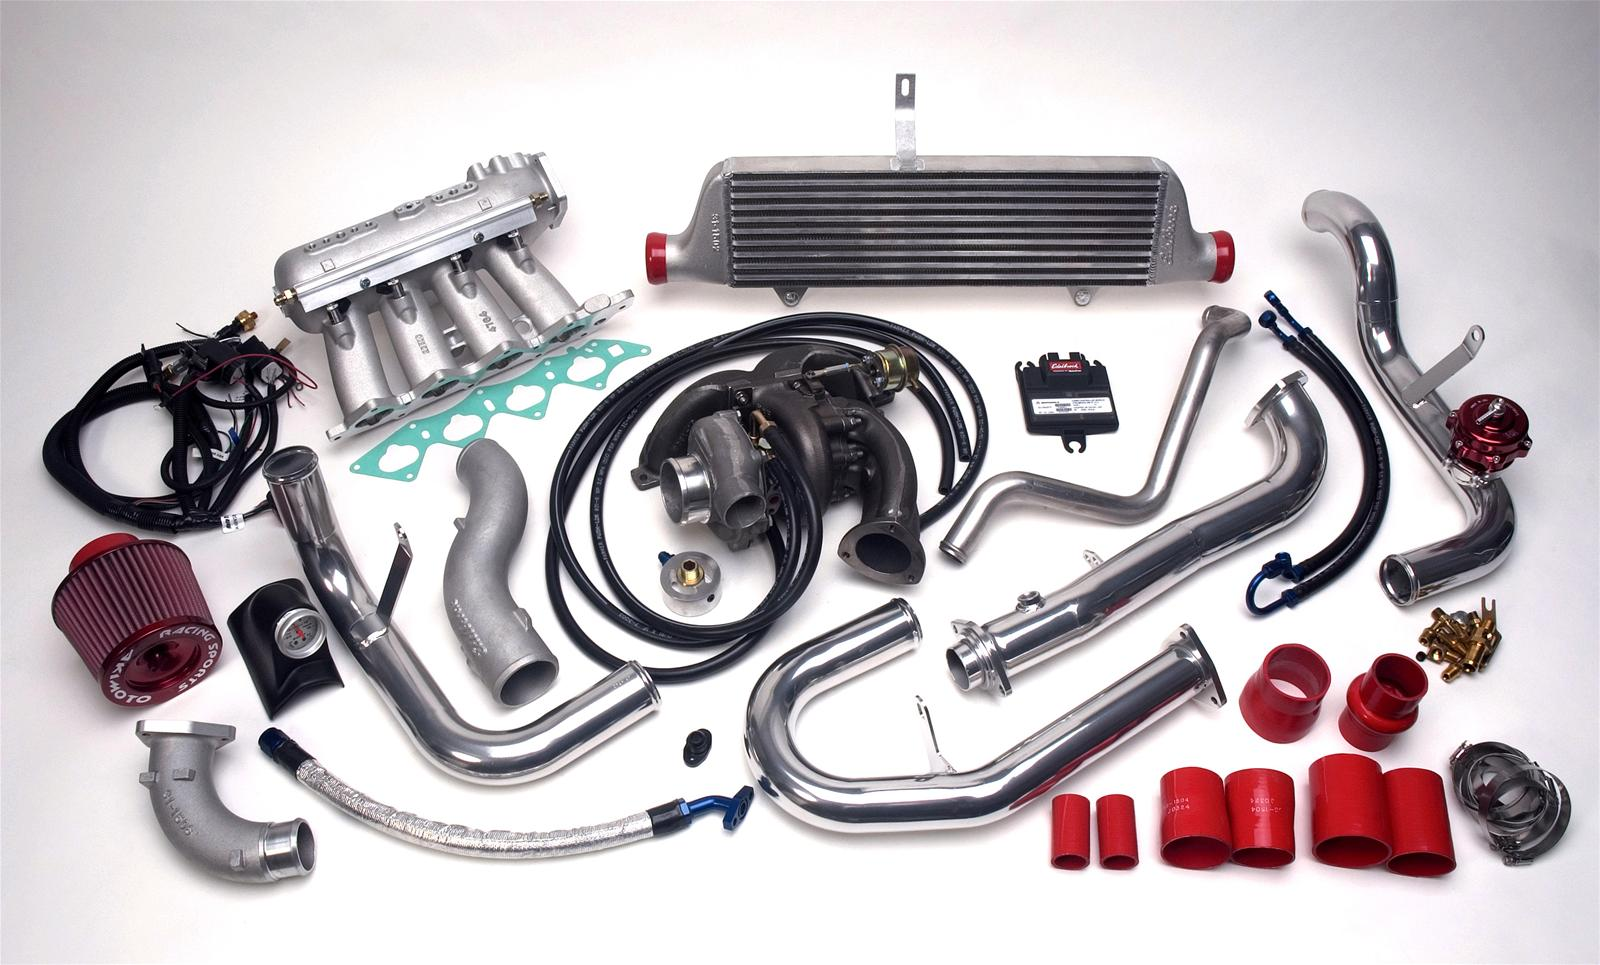 Edelbrock 1501 - Free Shipping on Orders Over $99 at Summit Racing